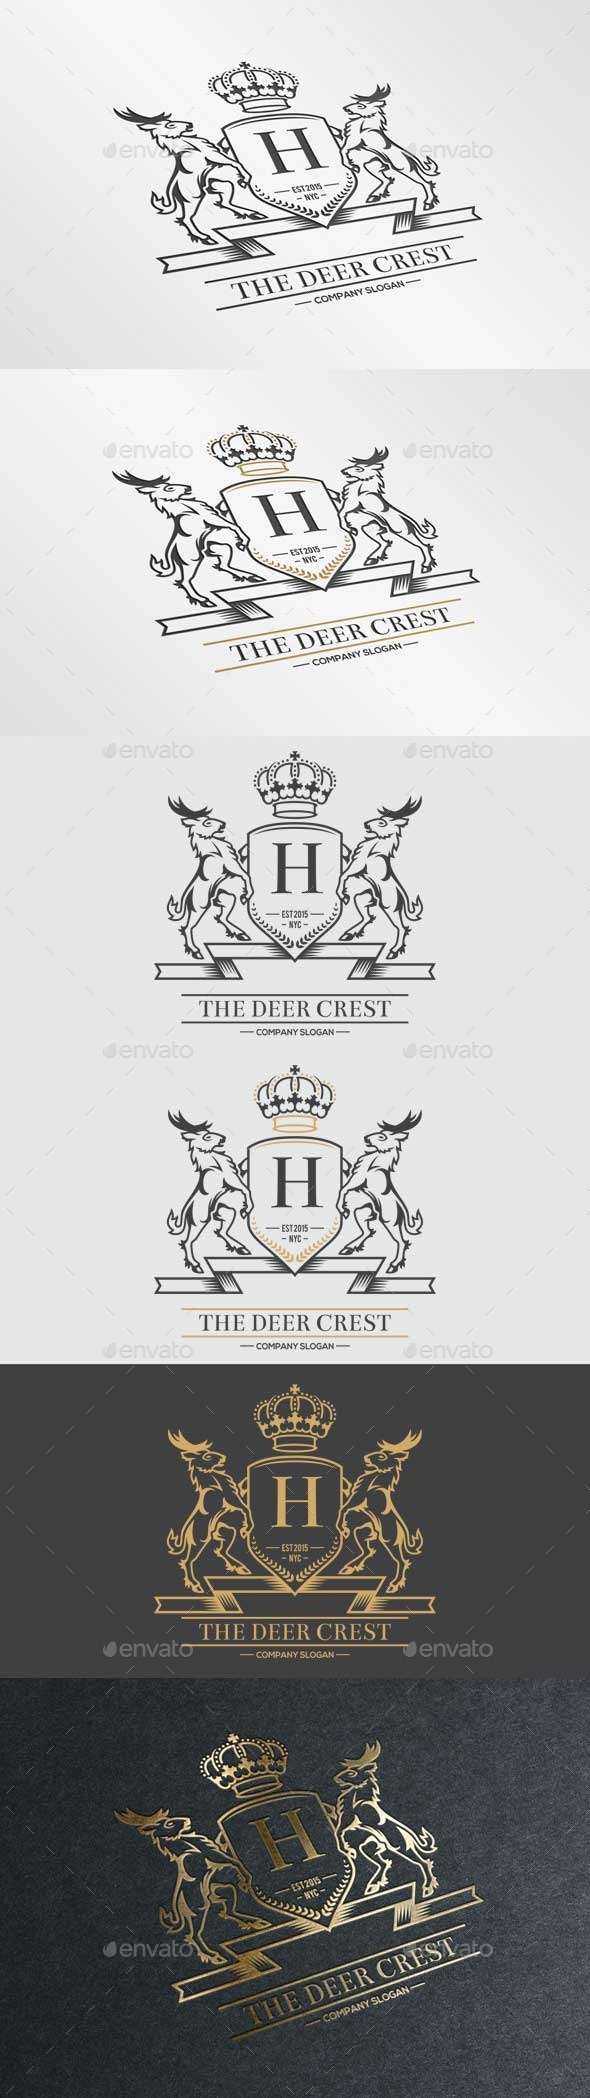 GraphicRiver The Deer Crest 10738931